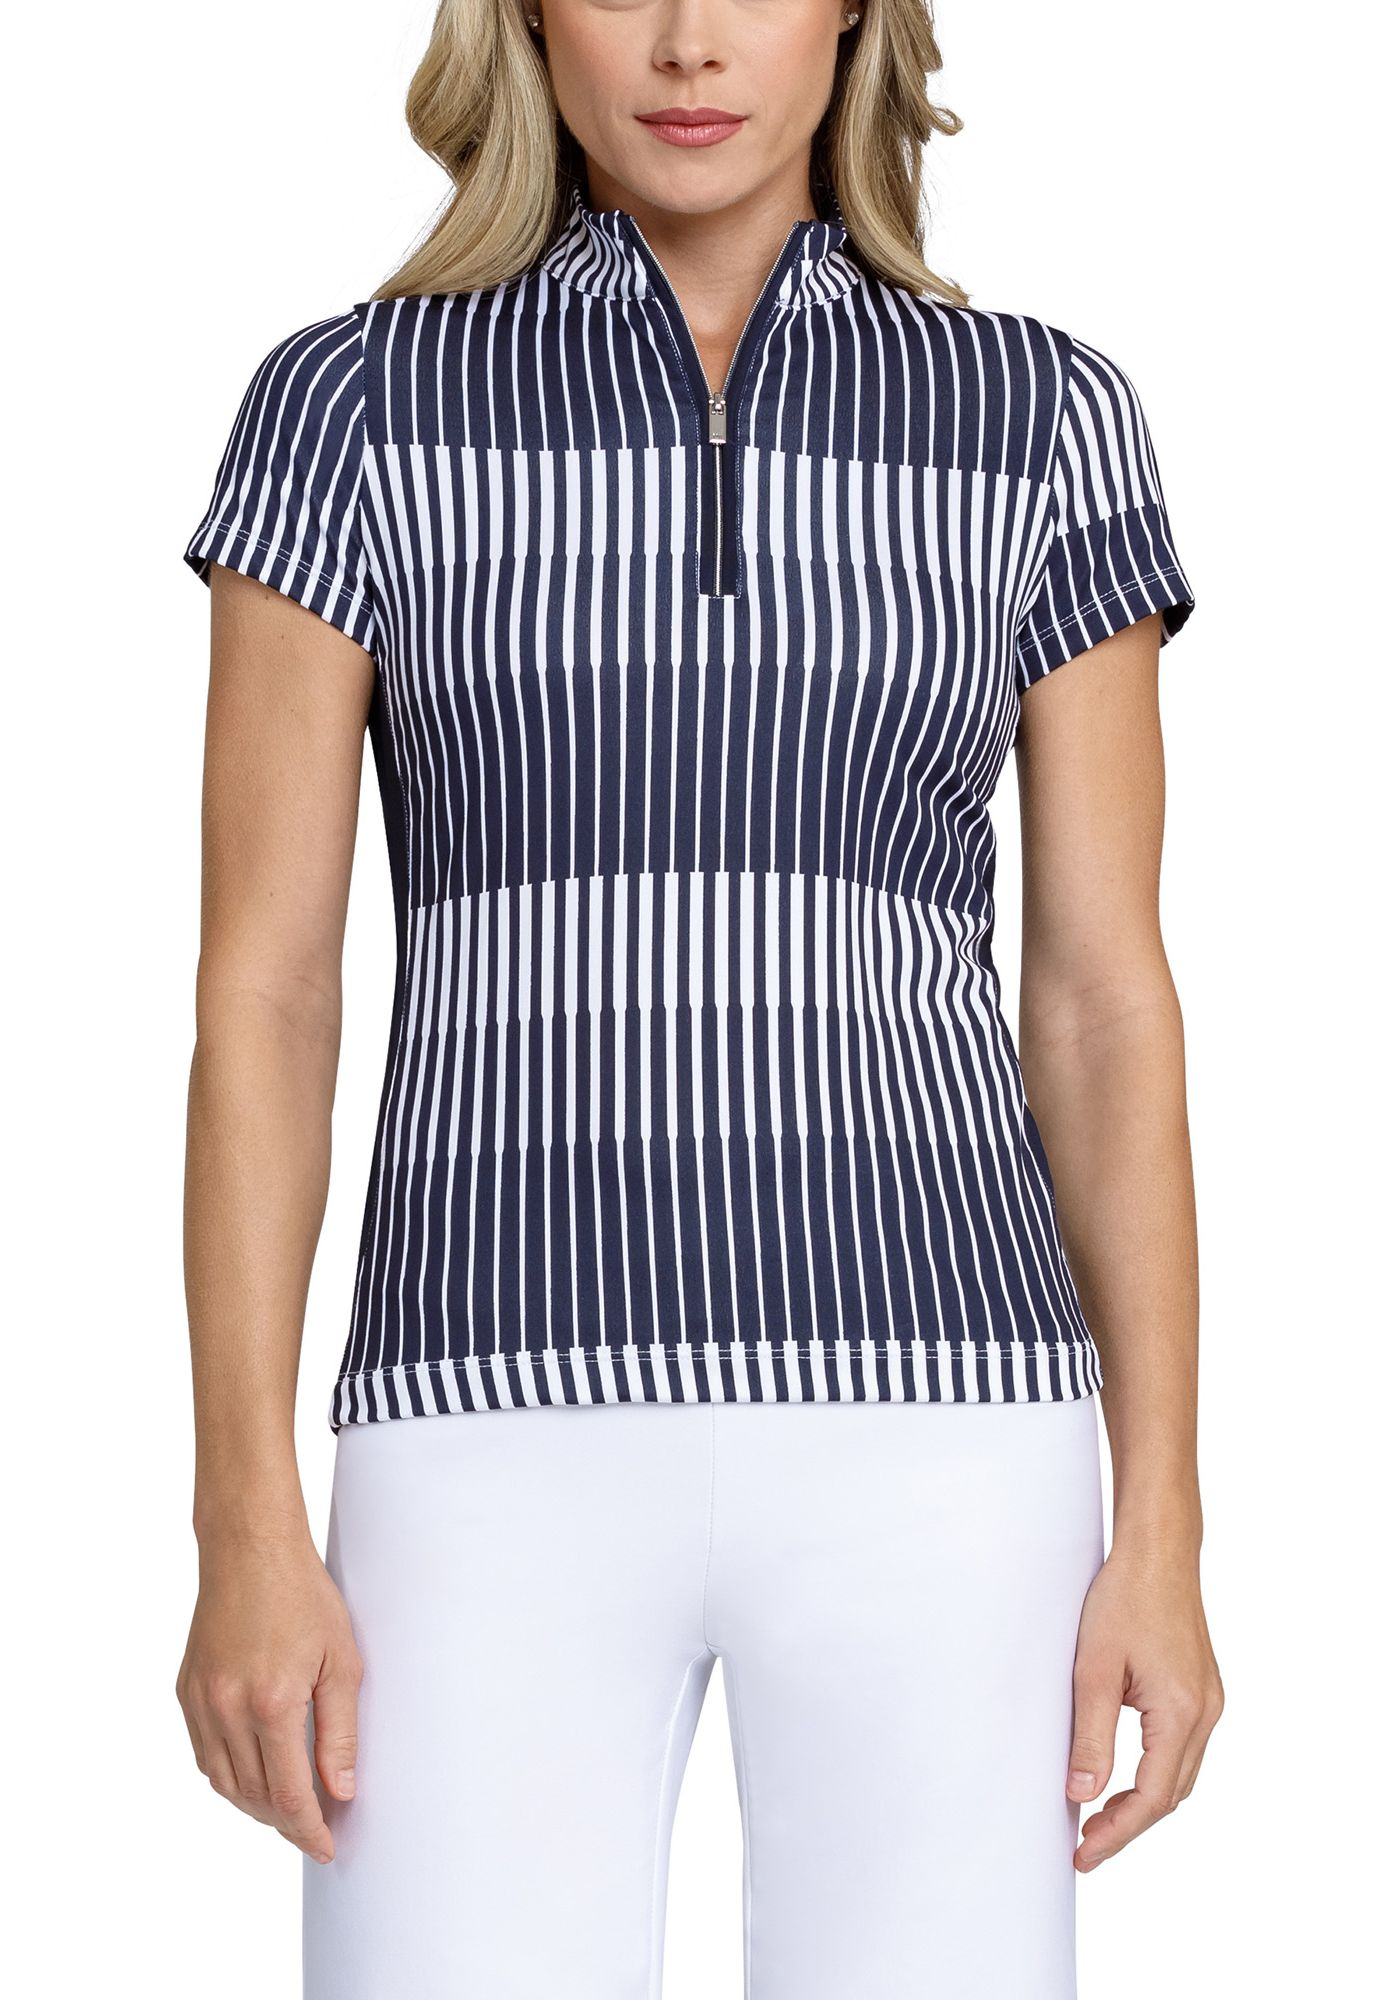 Tail Women's Extended Size Mock Neck Wrap Back Short Sleeve Golf Polo